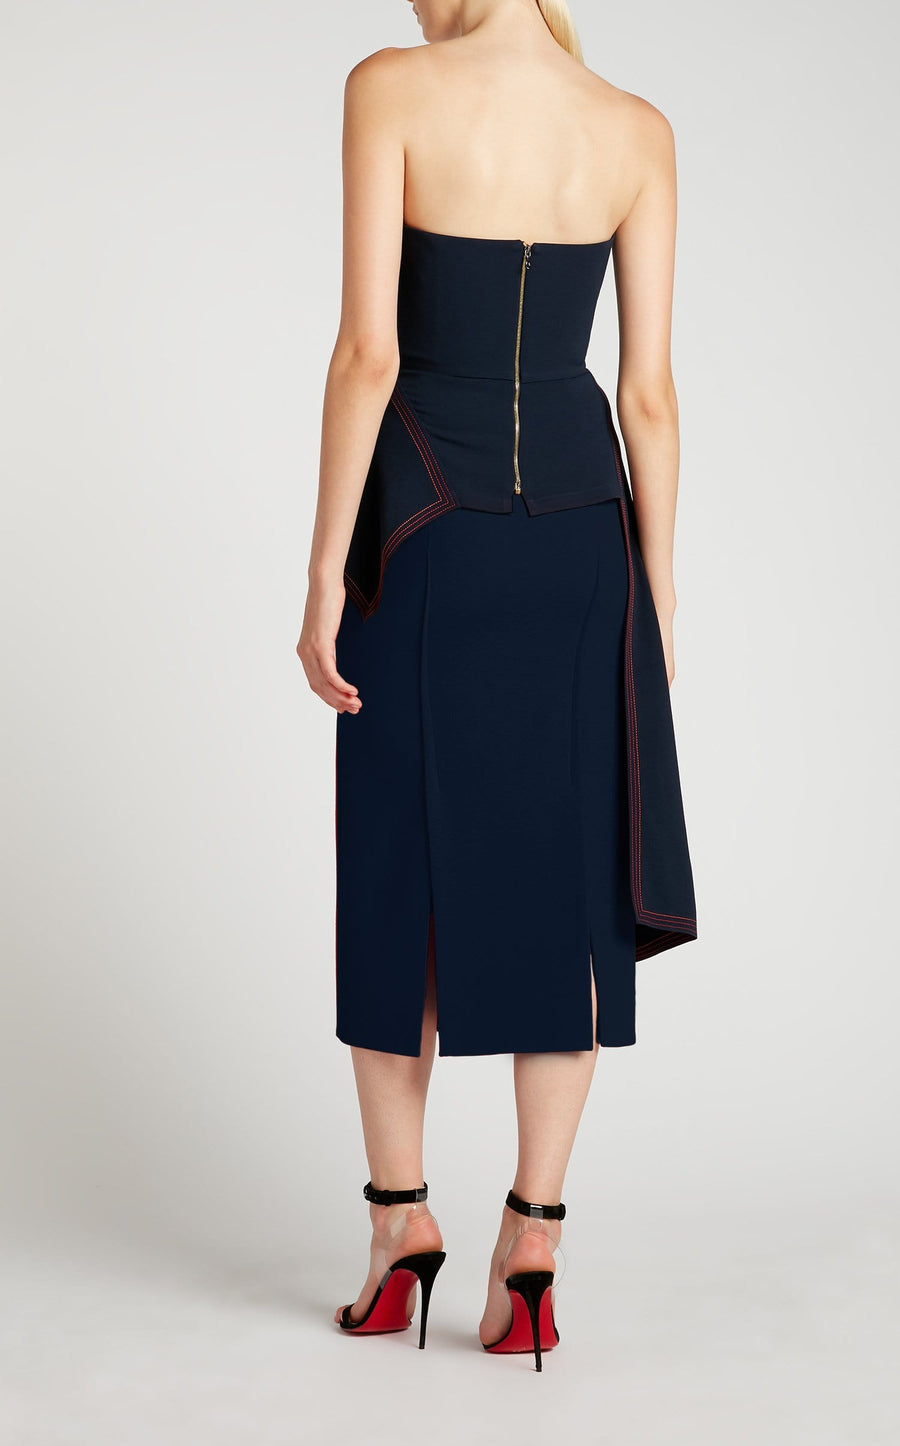 Abrams Skirt In Navy from Roland Mouret